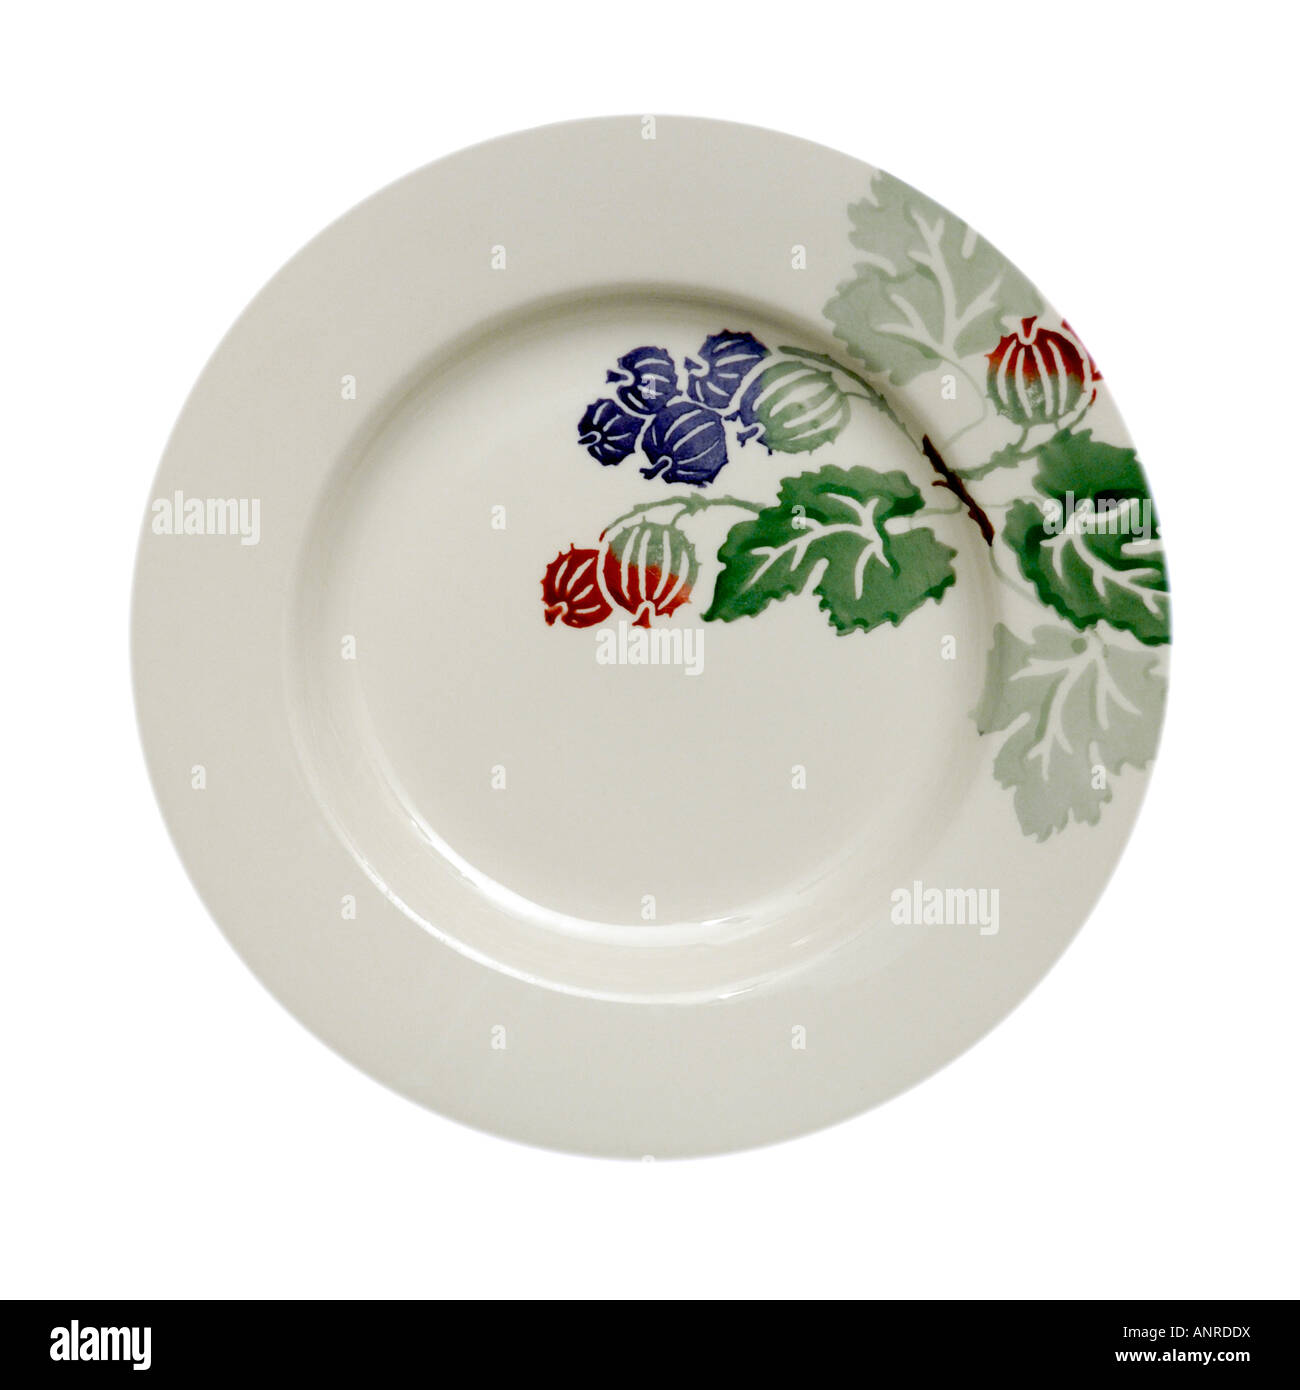 Bridgewater Pottery plate for EDITORIAL PURPOSES ONLY potted  2002 21st Anniversary - Stock Image